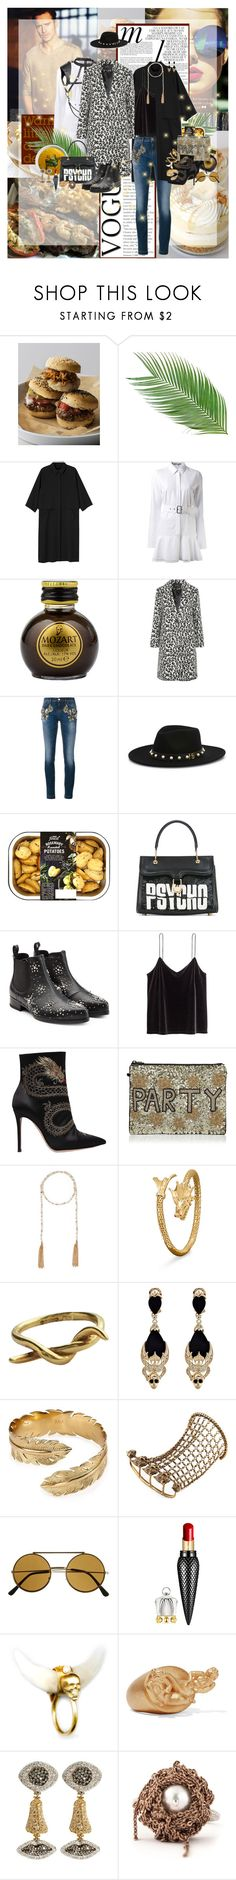 """""""Almost Classy"""" by lady-redrise ❤ liked on Polyvore featuring Neiman Marcus, Whiteley, By Emily, Monki, Victoria Beckham, Maje, Dolce&Gabbana, Henri Bendel, Olympia Le-Tan and Alexander McQueen"""